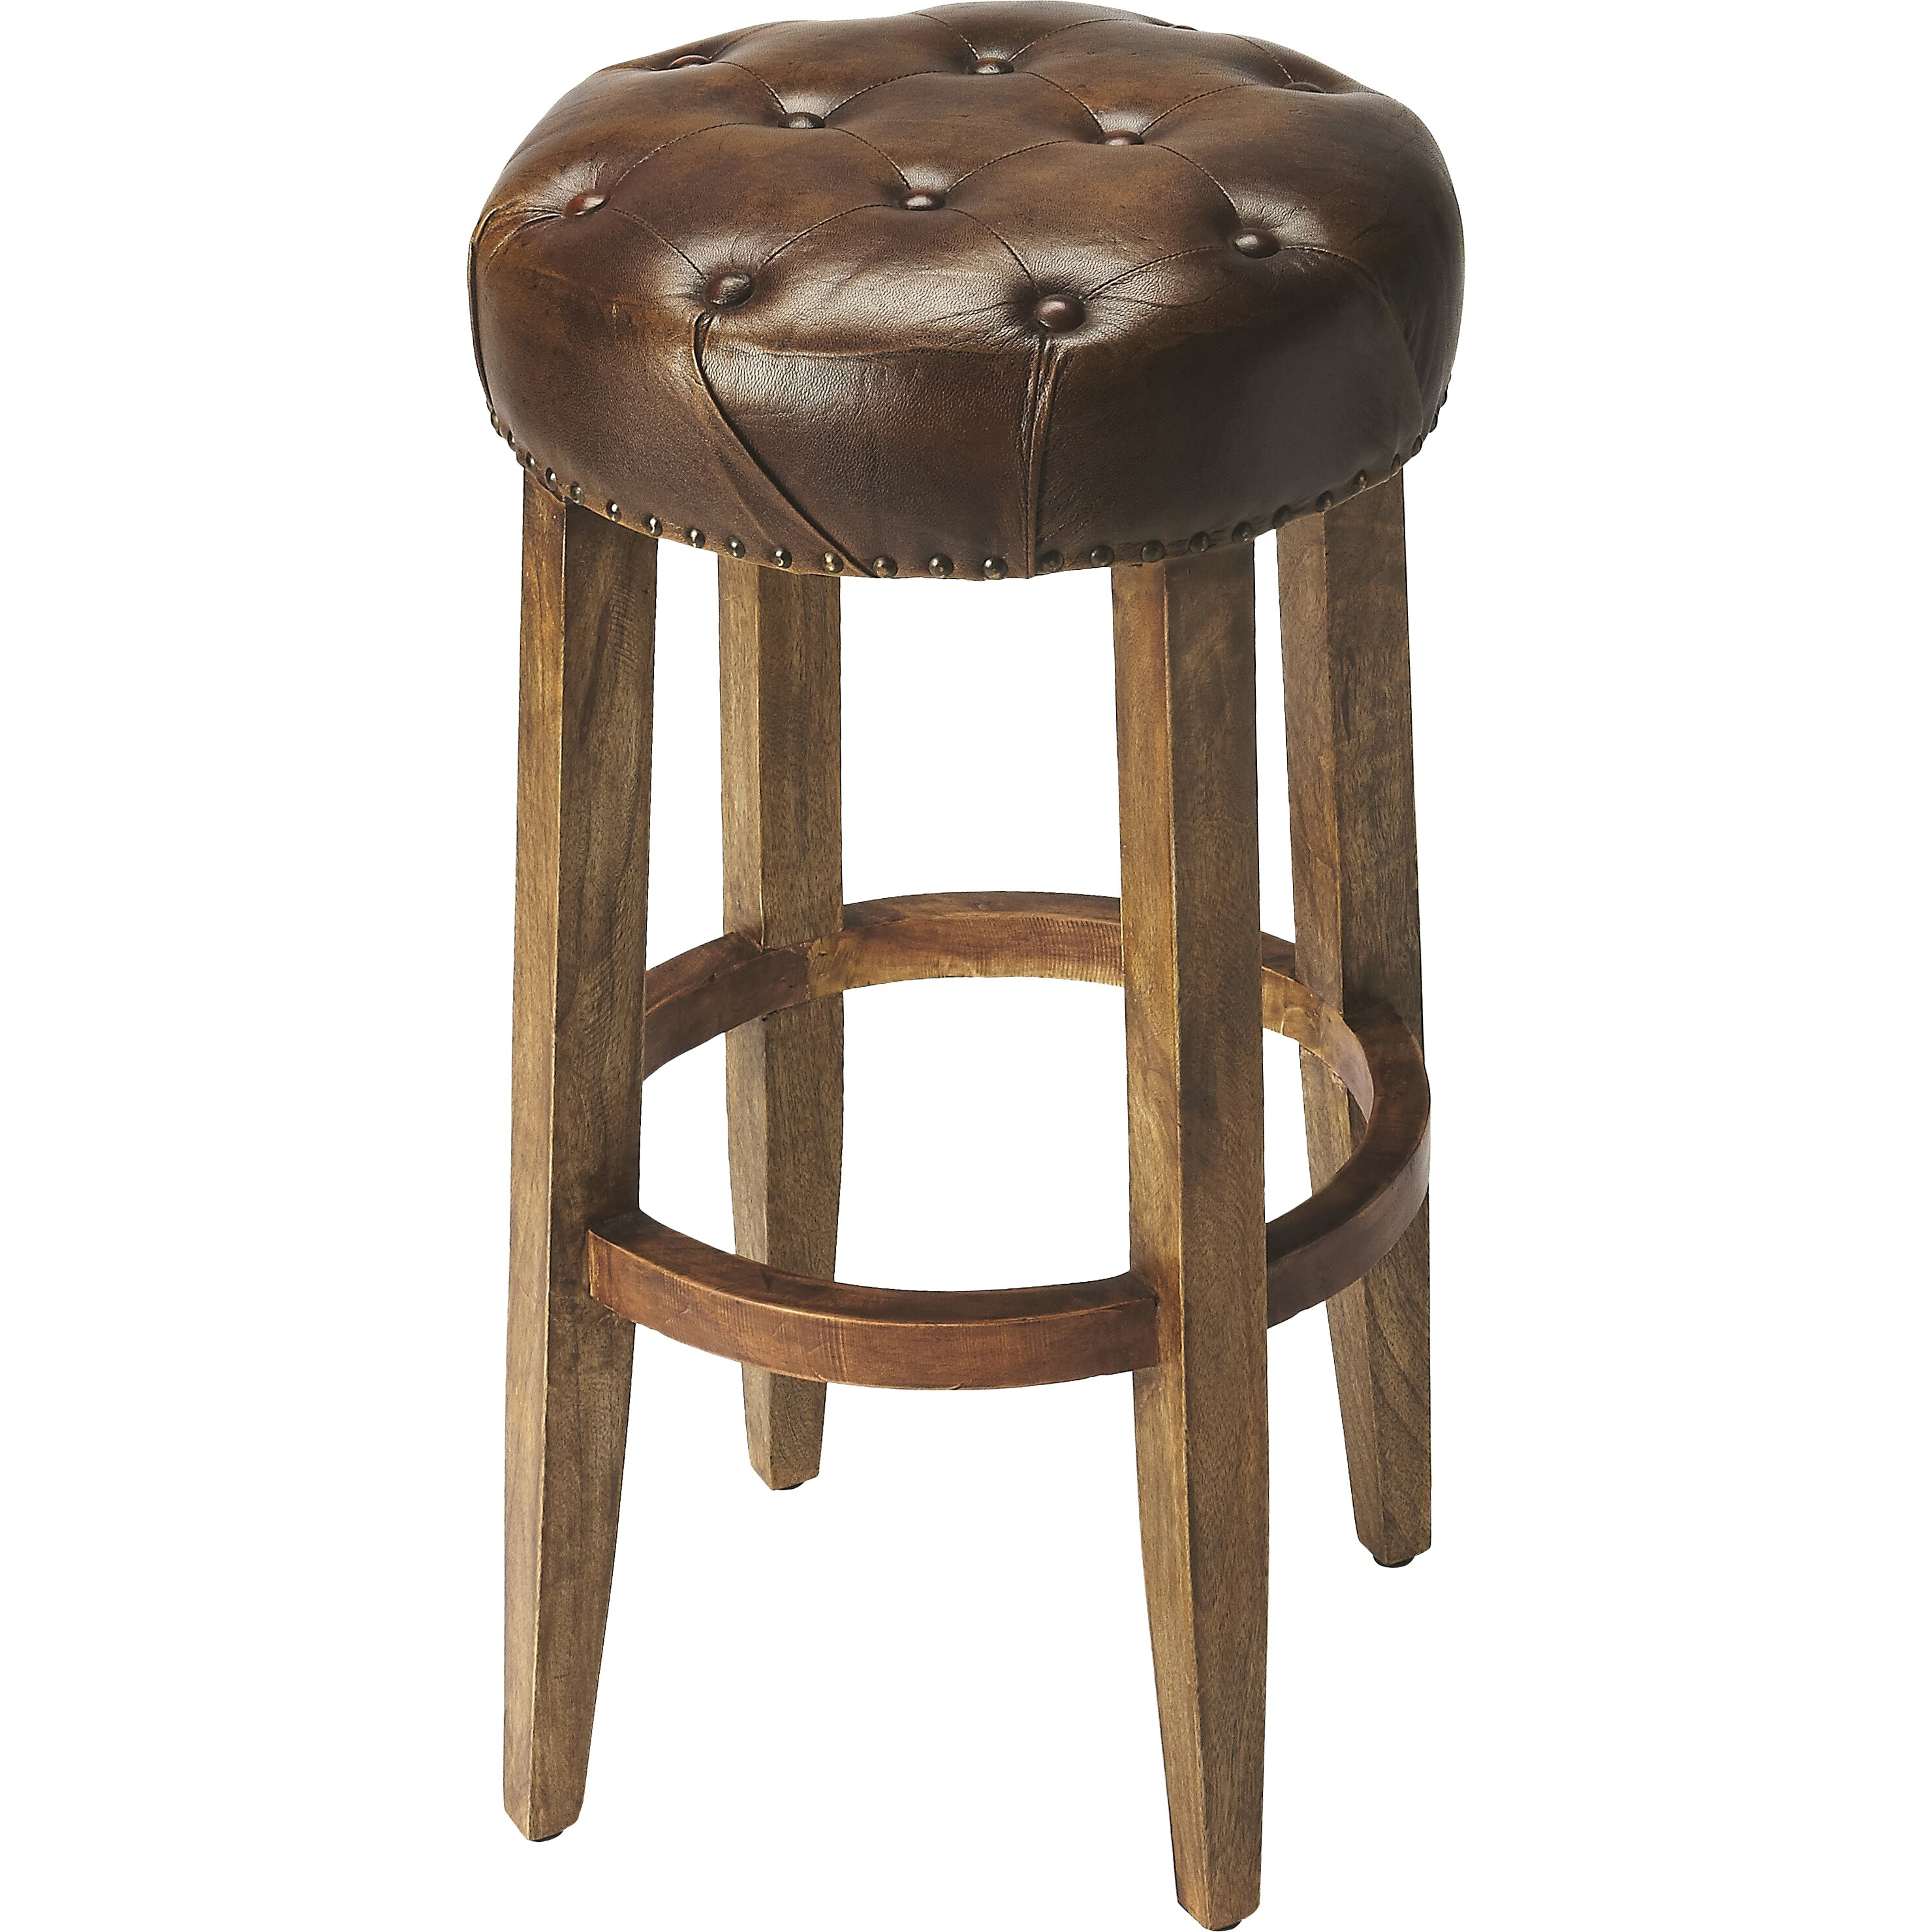 30 Bar Stool 28 Images Alcott Hill Kiely 30 Quot Bar Stool Reviews Wayfair Darby Home Co Archdale 30 Quot Bar Stool Reviews Wayfair Safavieh Seth 30 Quot Bar Stool